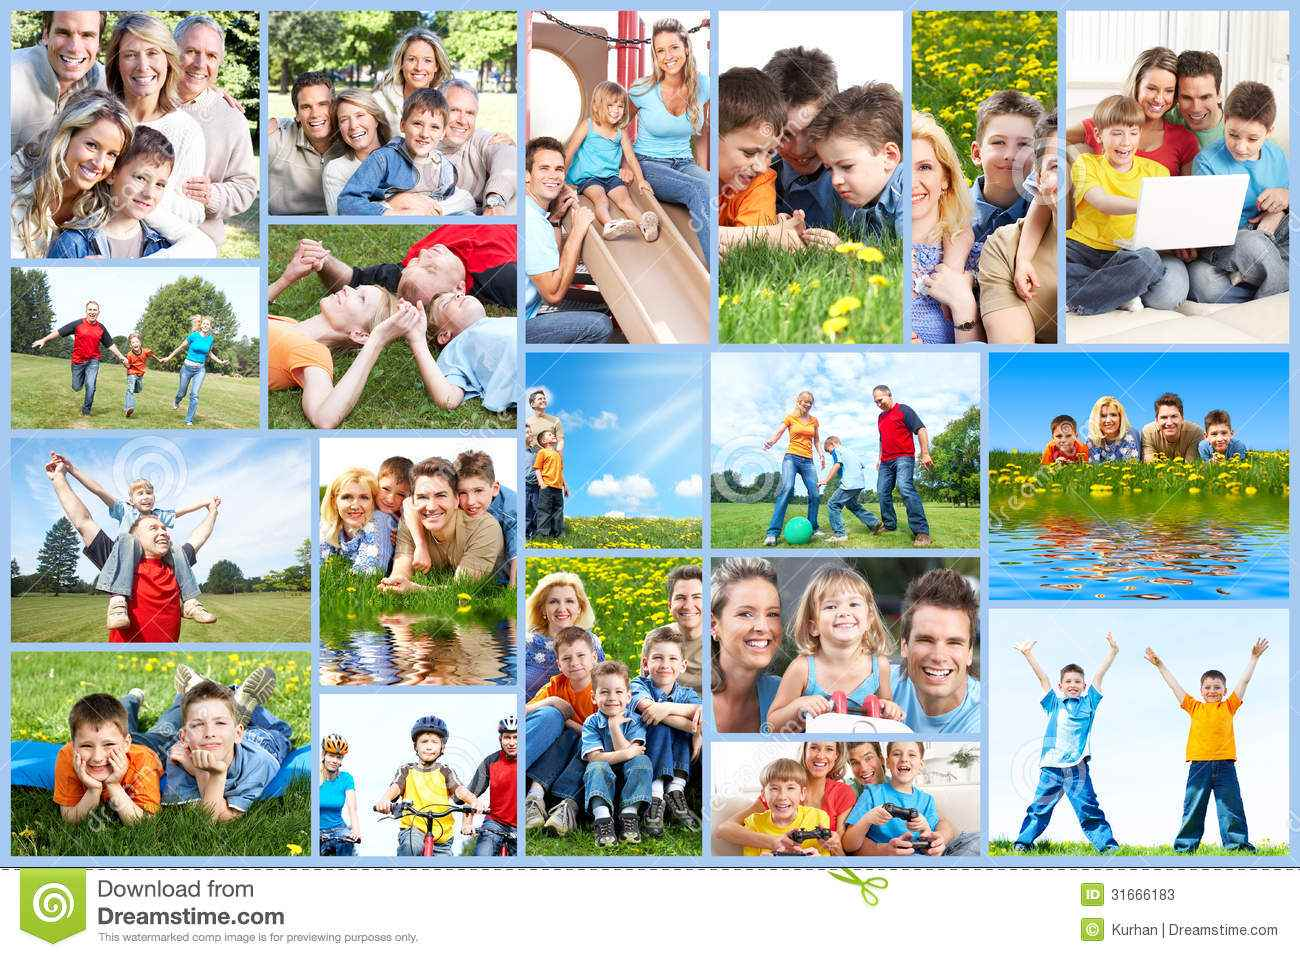 happy-family-collage-background-people-outdoors-31666183.jpg